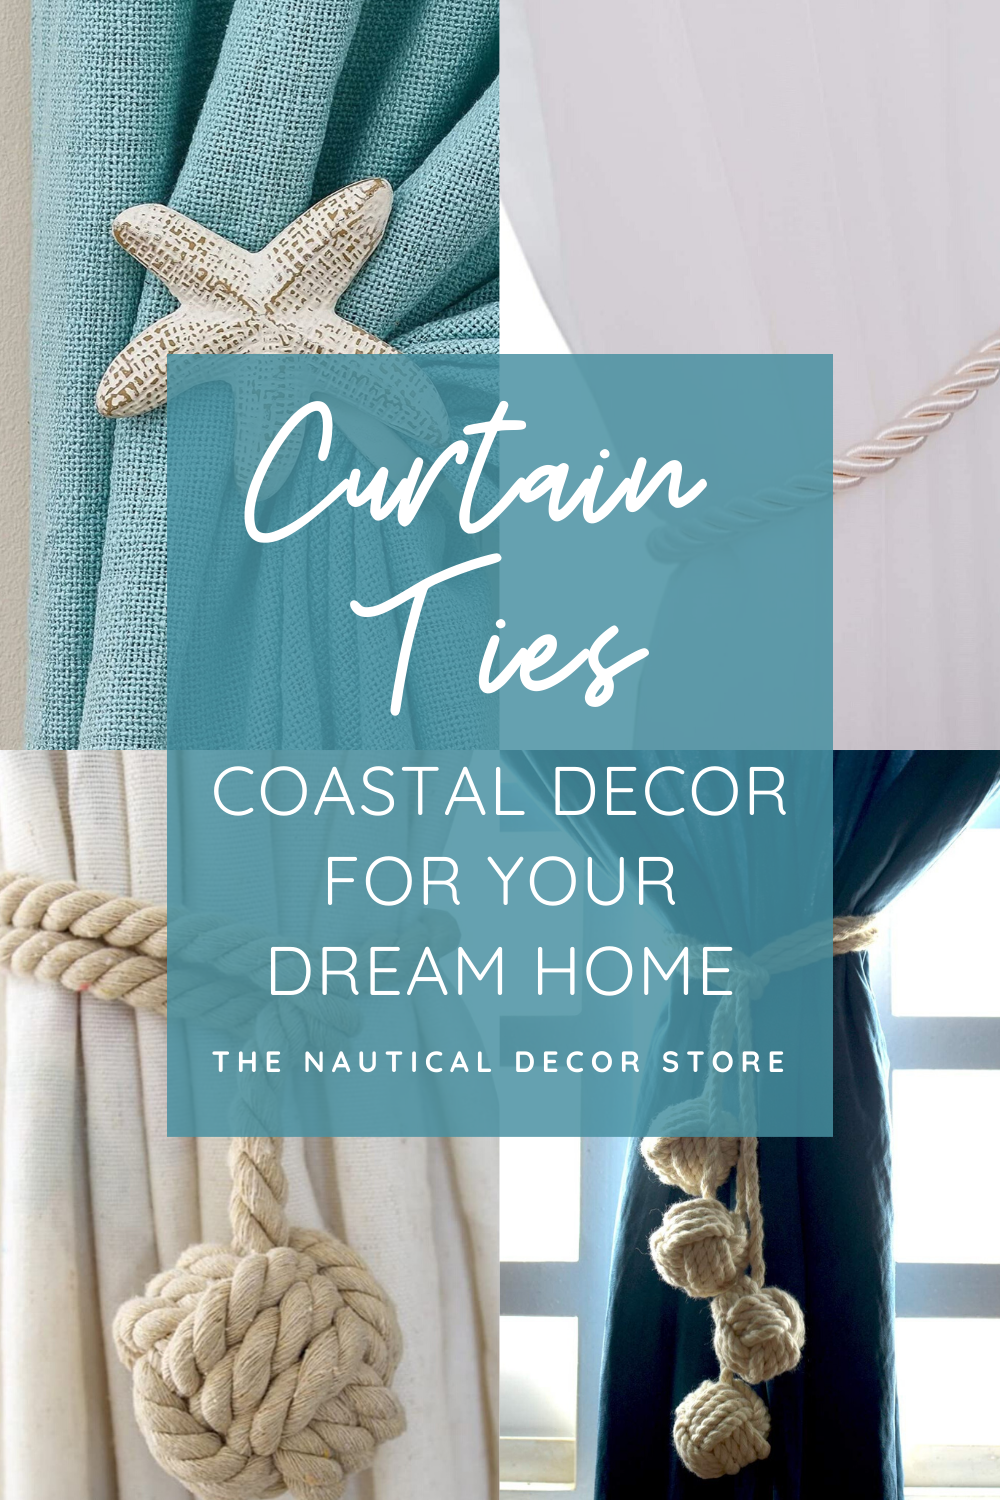 Stunning home decor for your coastal cottage, farmhouse or beach house. Choose from this range of nautical curtain ties to really bring your house together. It's always the finishing touches that make a house a home and you can start with. We have rope balls that you don't even need to drill holes in the wall for. #curtainties #coastaldecor #dreamhome #nauticaldecor